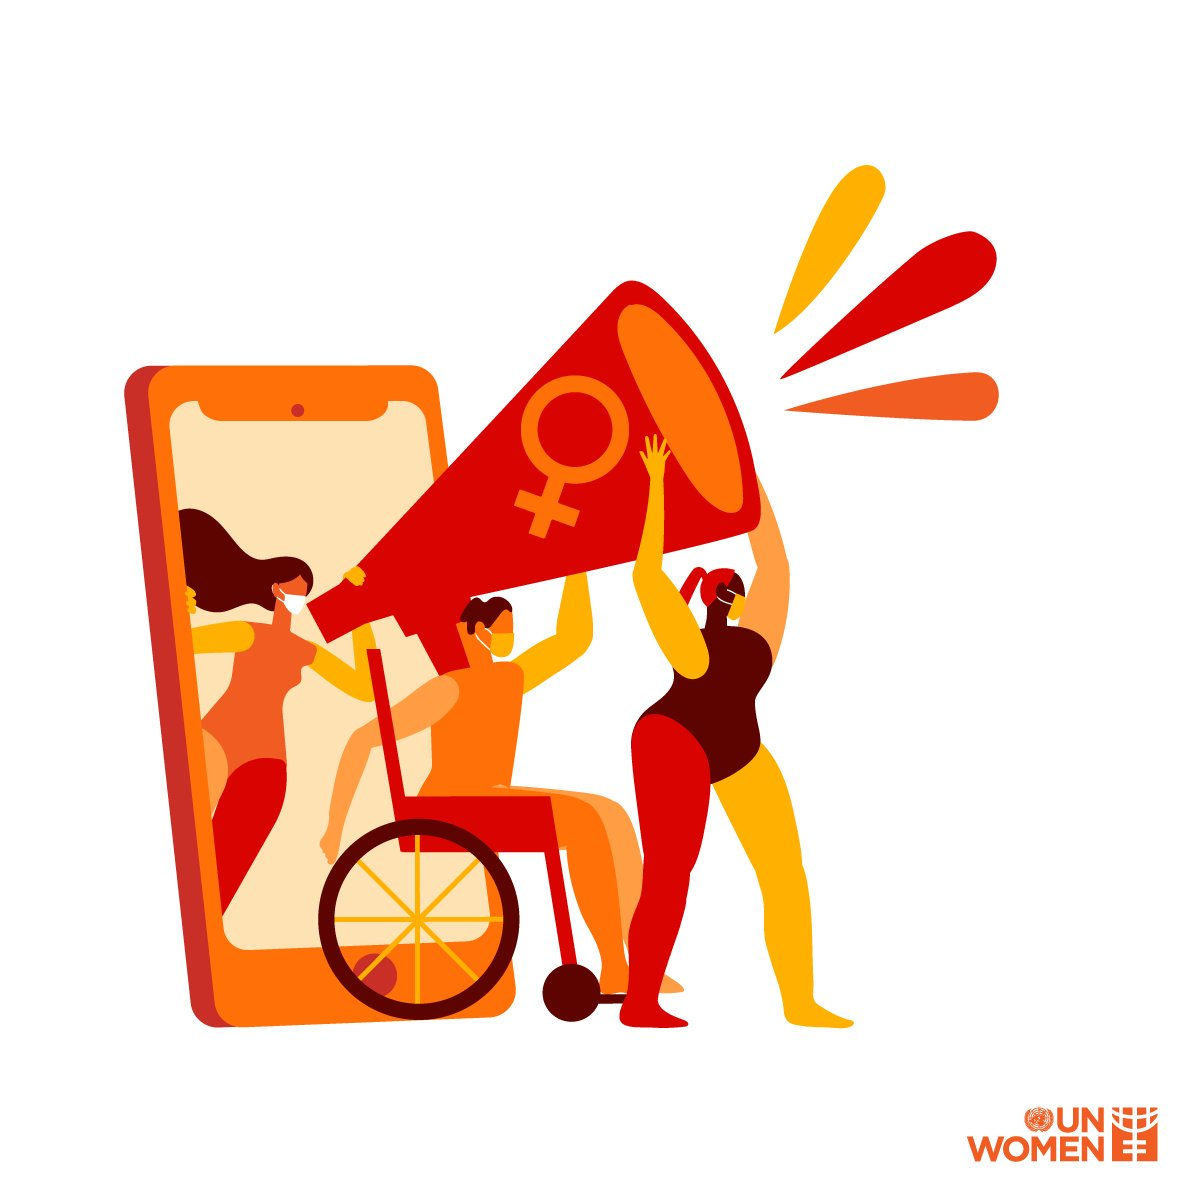 Violence against women & girls is a human rights violation that's been perpetuated for decades. It's pervasive, but not inevitable -- unless we stay silent.  During the #16Days of activism & every day, speak out to help break the cycle of abuse.